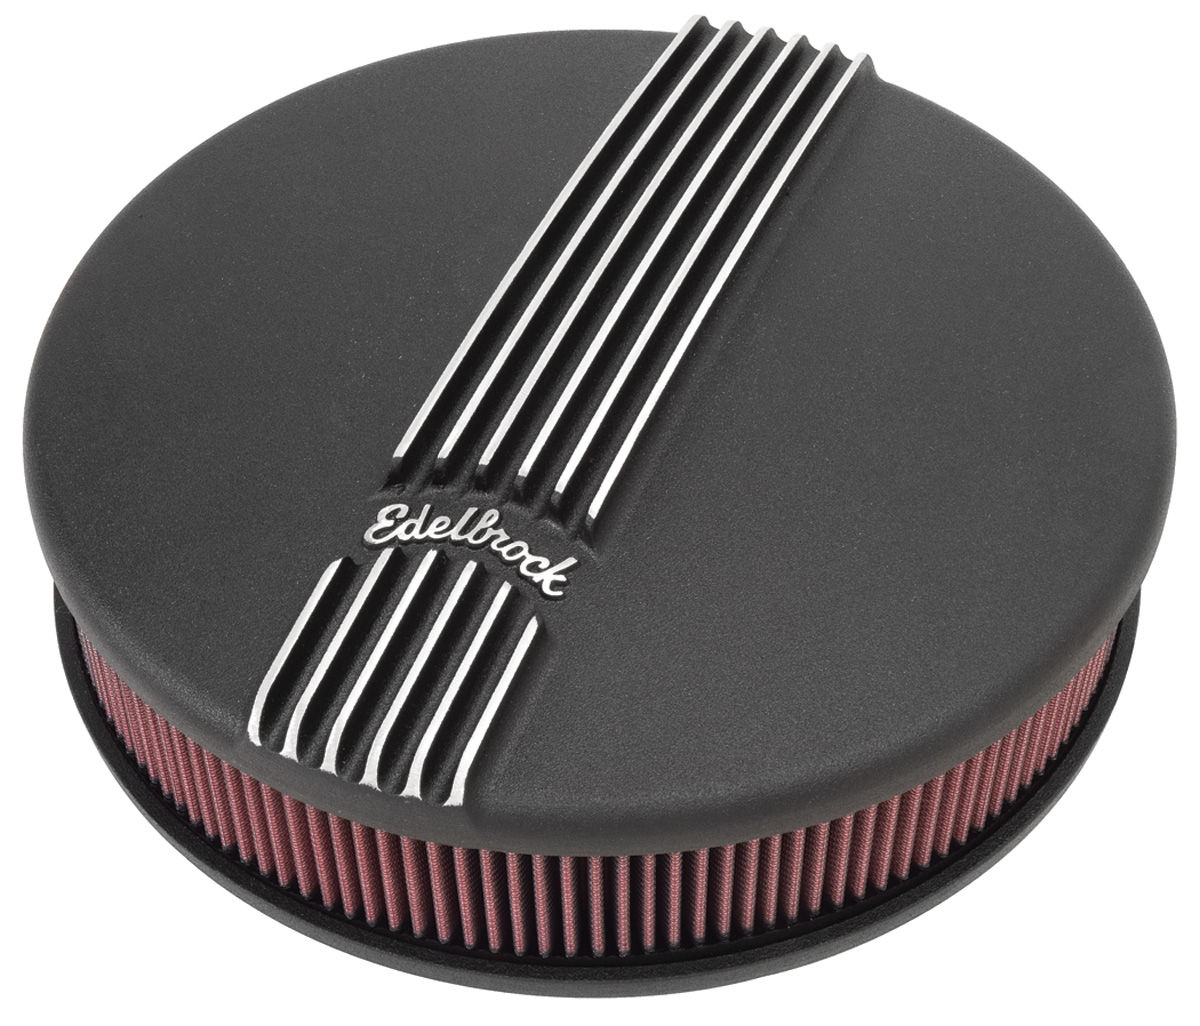 Air Cleaner, Edelbrock, Round, Classic Series, 4BBL, Black